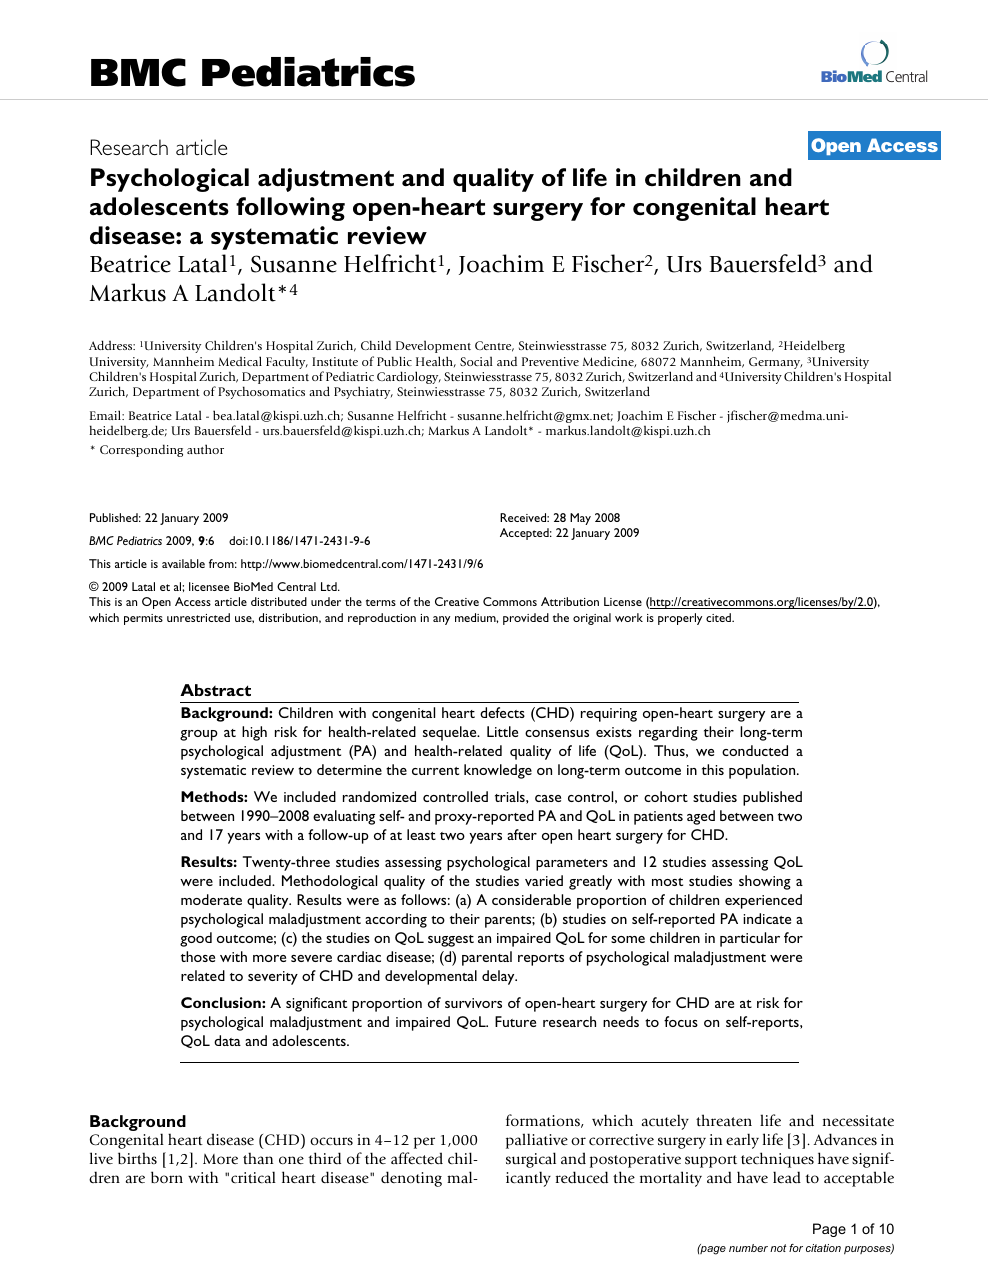 Psychological adjustment and quality of life in children and adolescents  following open-heart surgery for congenital heart disease: a systematic  review – topic of research paper in Psychology. Download scholarly article  PDF and